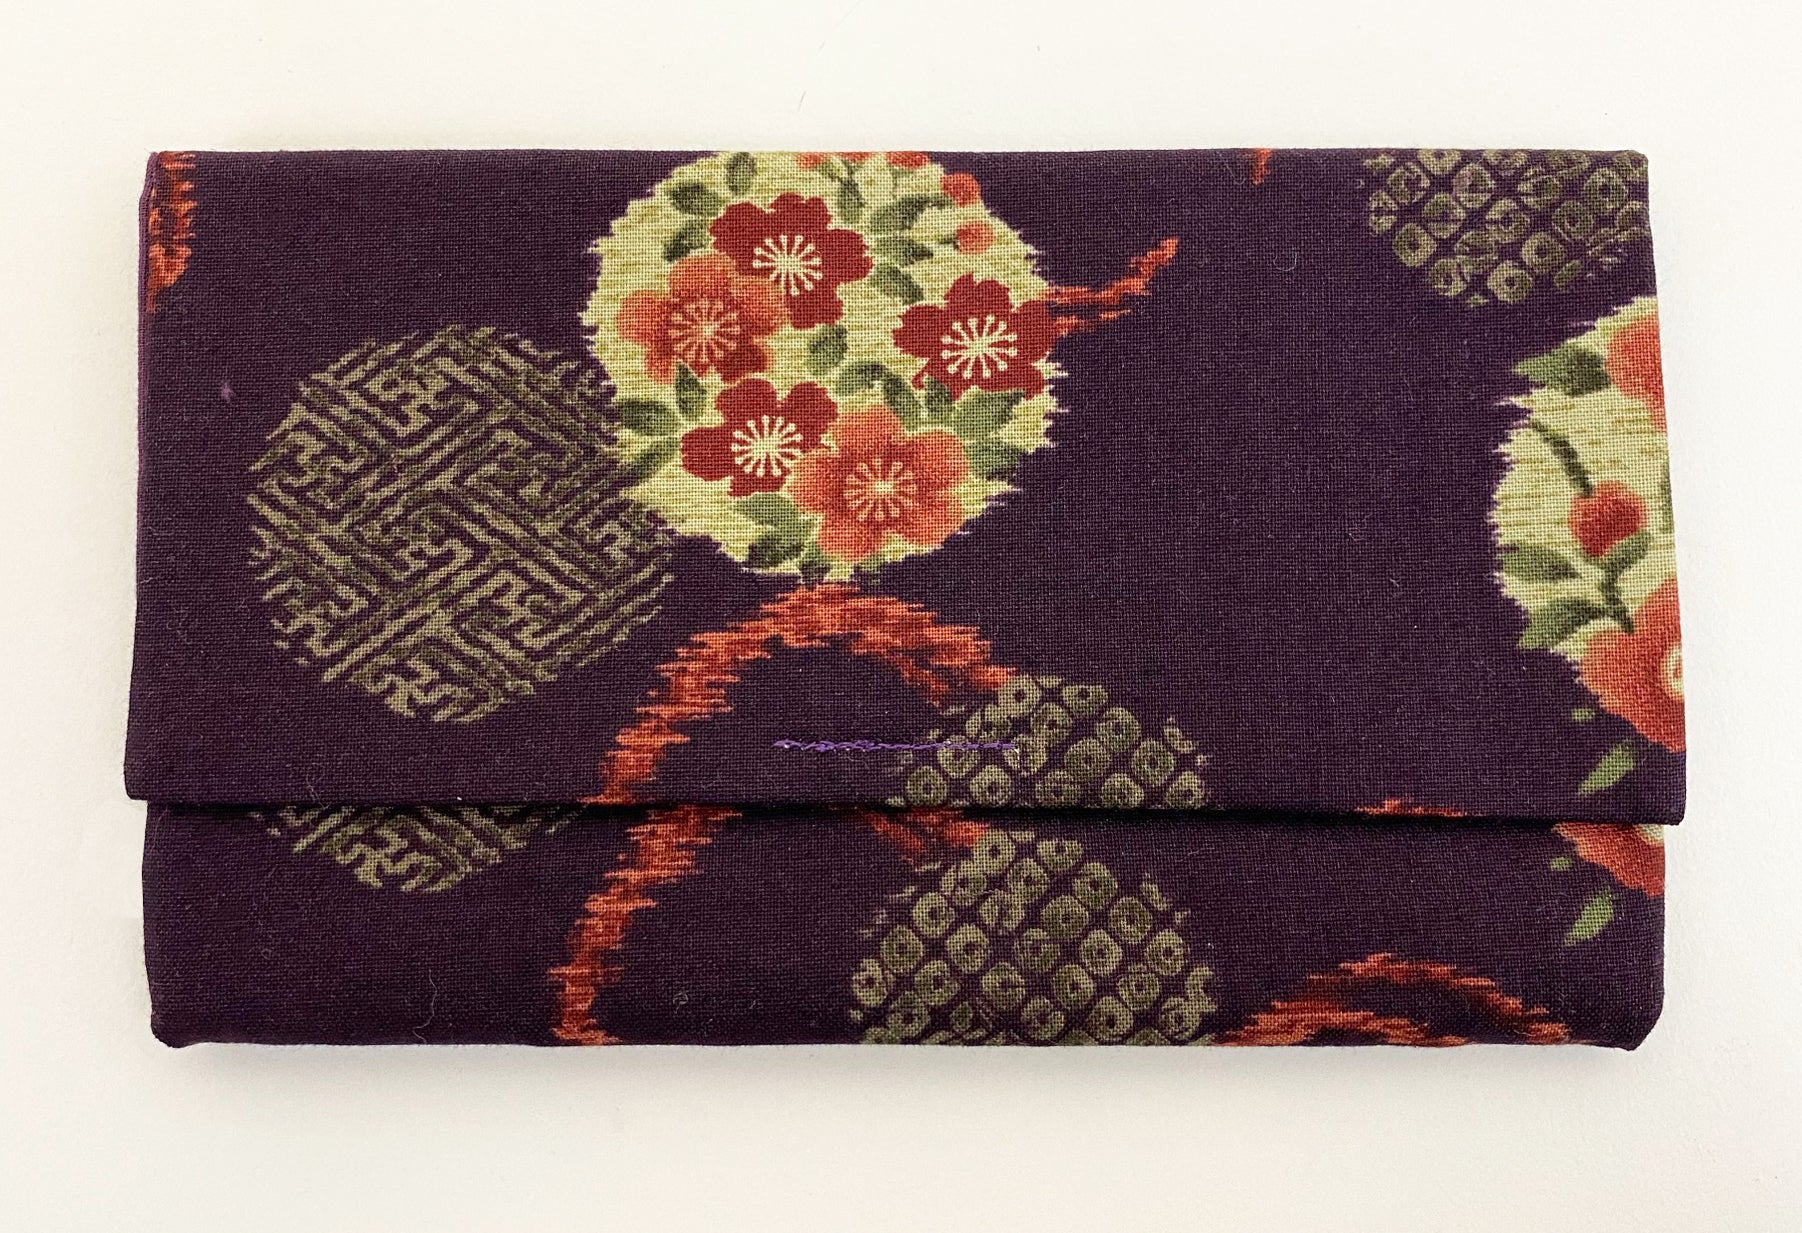 Premium Kimono Fabric Beads Case #4 (Medium)